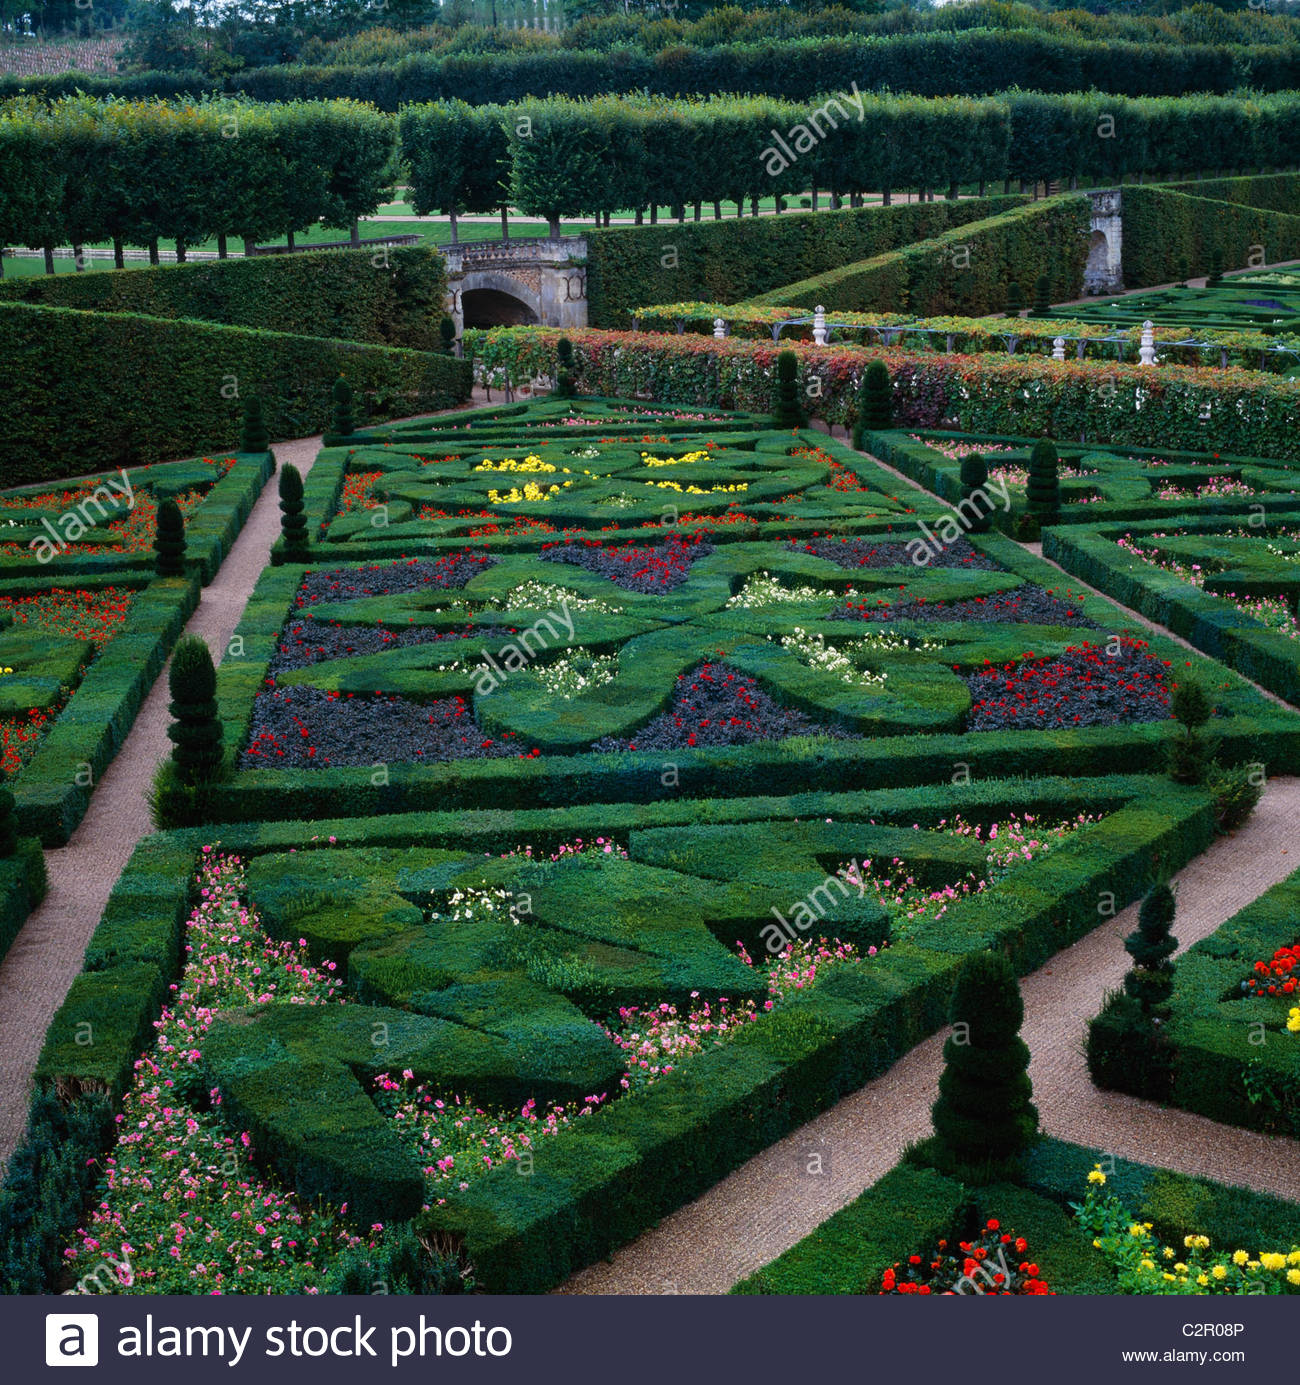 Box Hedges, Topiary Shapes And Dwarf Dahlias   Garden Of Love At Chateau De  Villandry